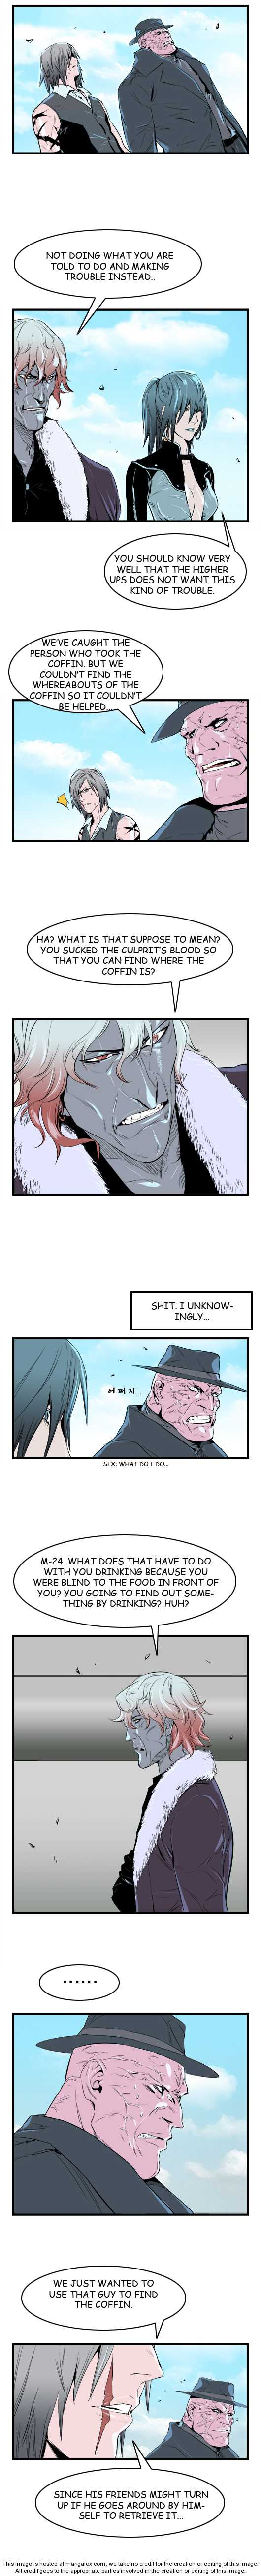 Noblesse 37 Page 2